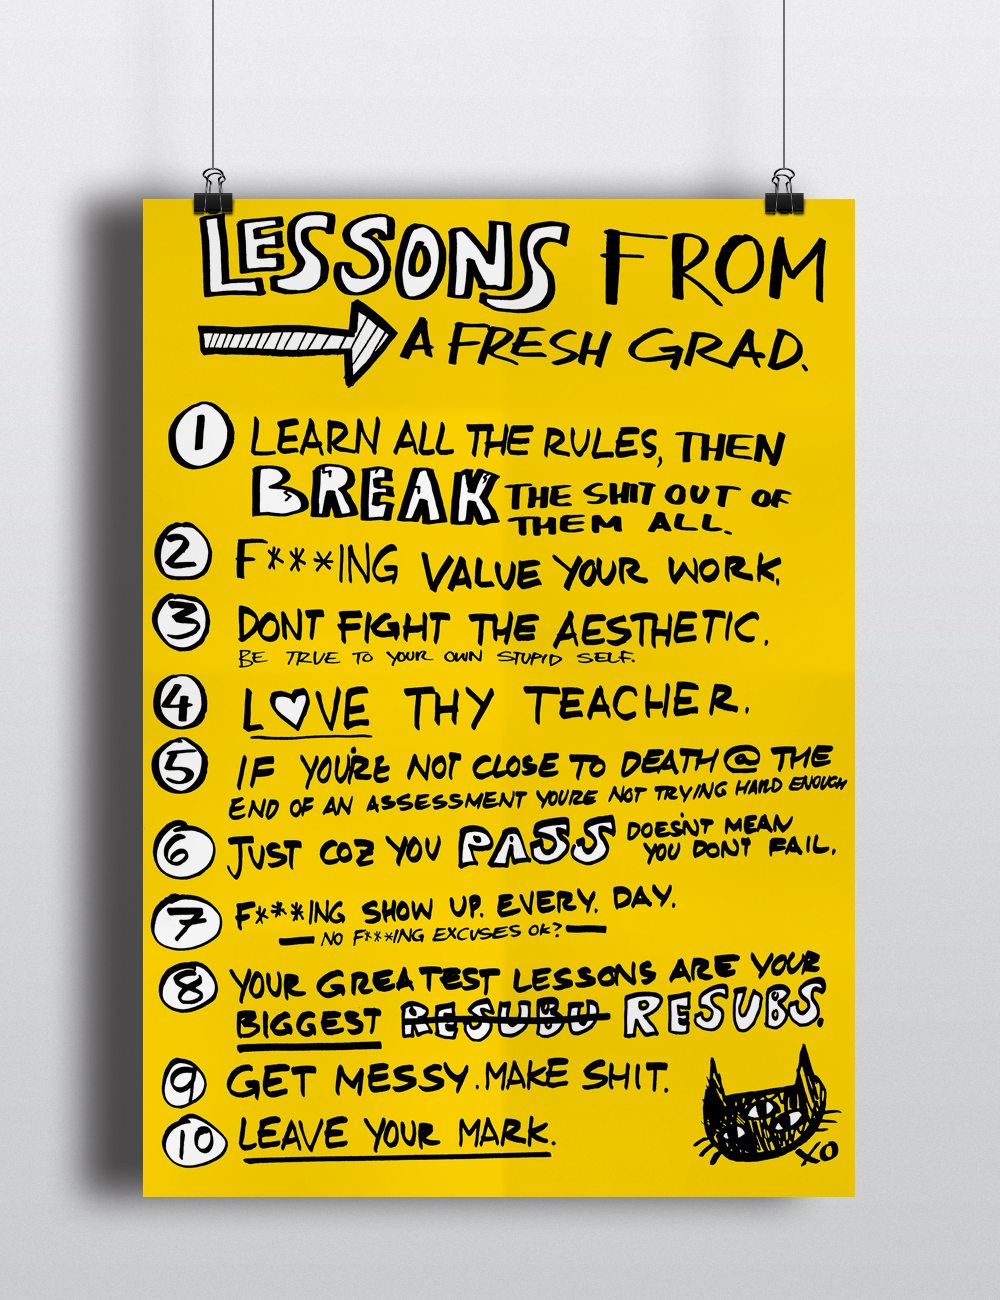 2016 Lessons from a Fresh Grad Poster